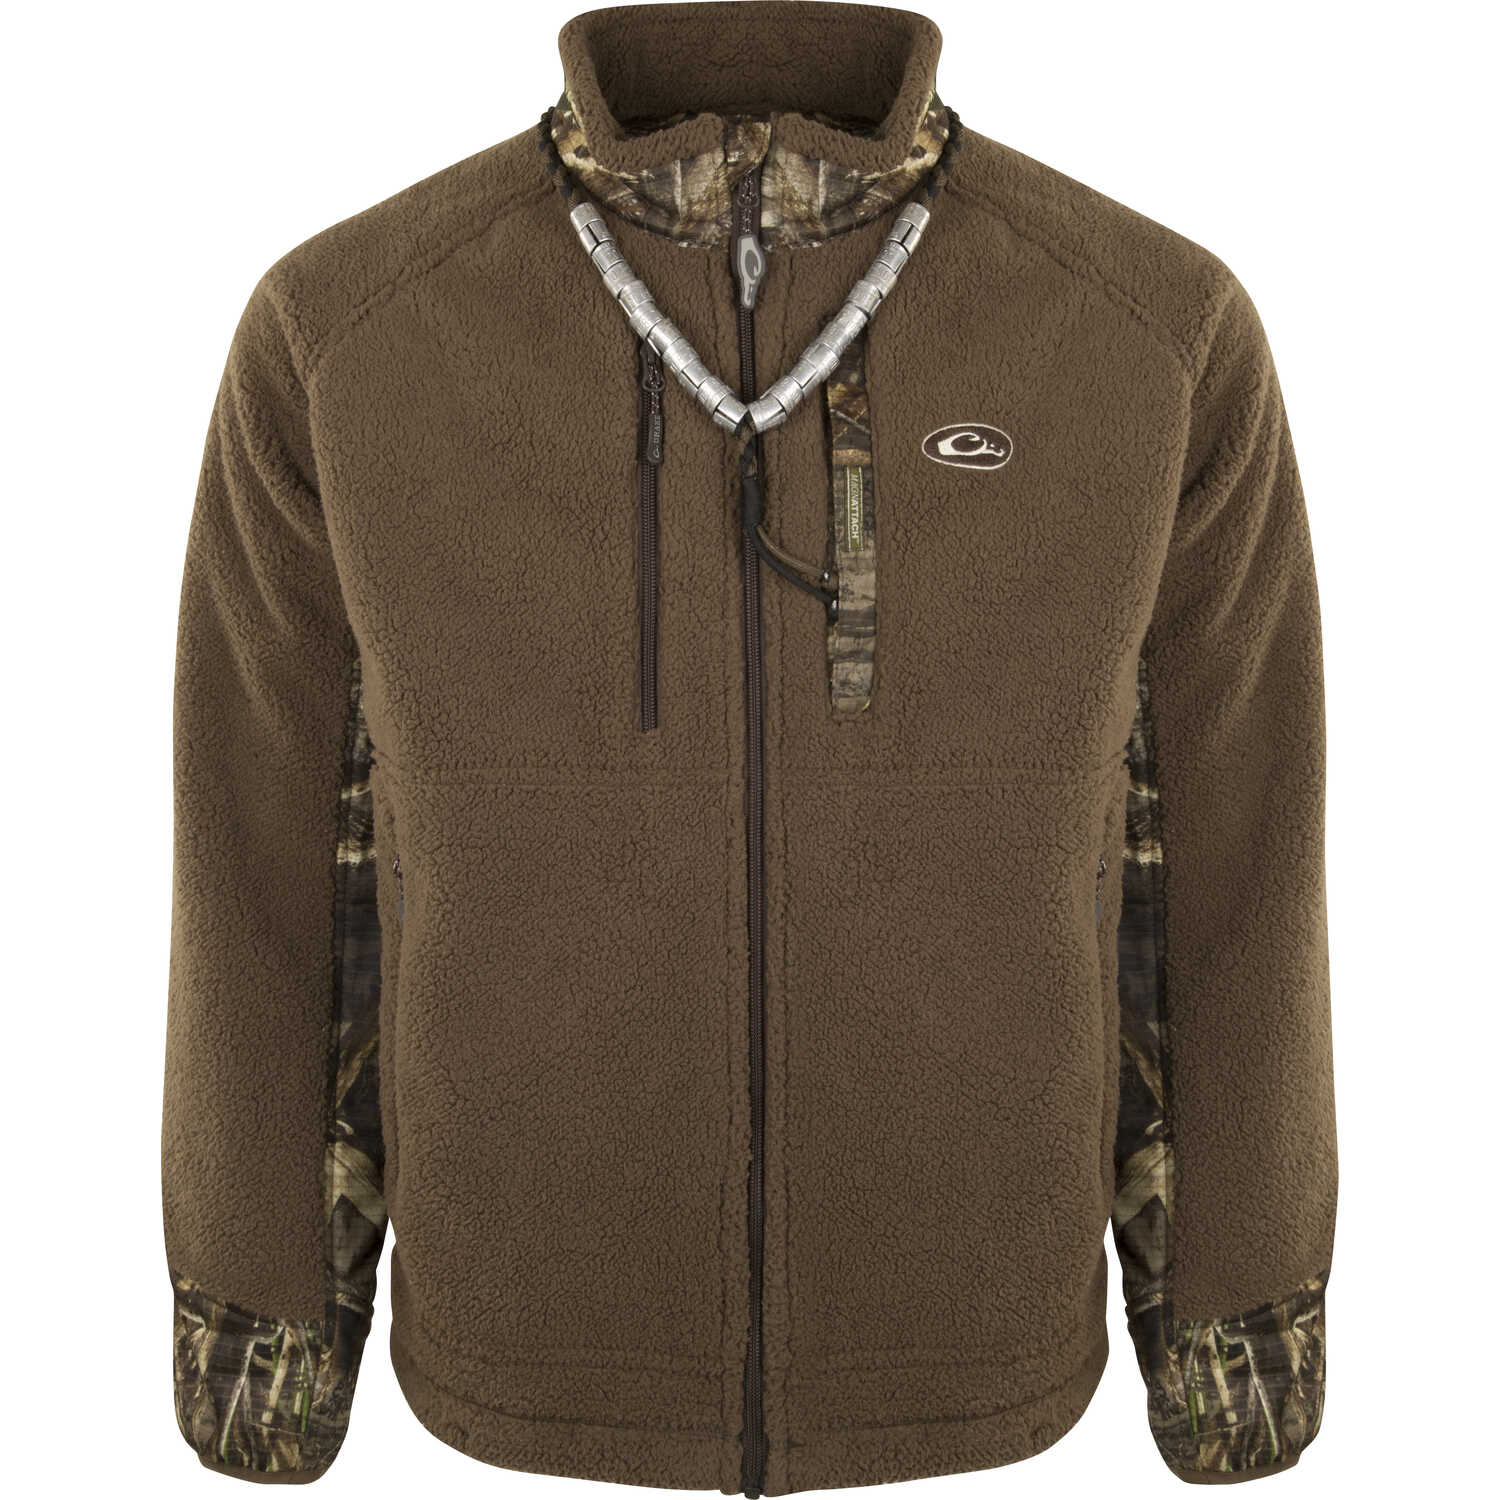 Drake  MST Sherpa  Medium  Men's  Long Sleeve  Full-Zip  Realtree Max-5  Liner